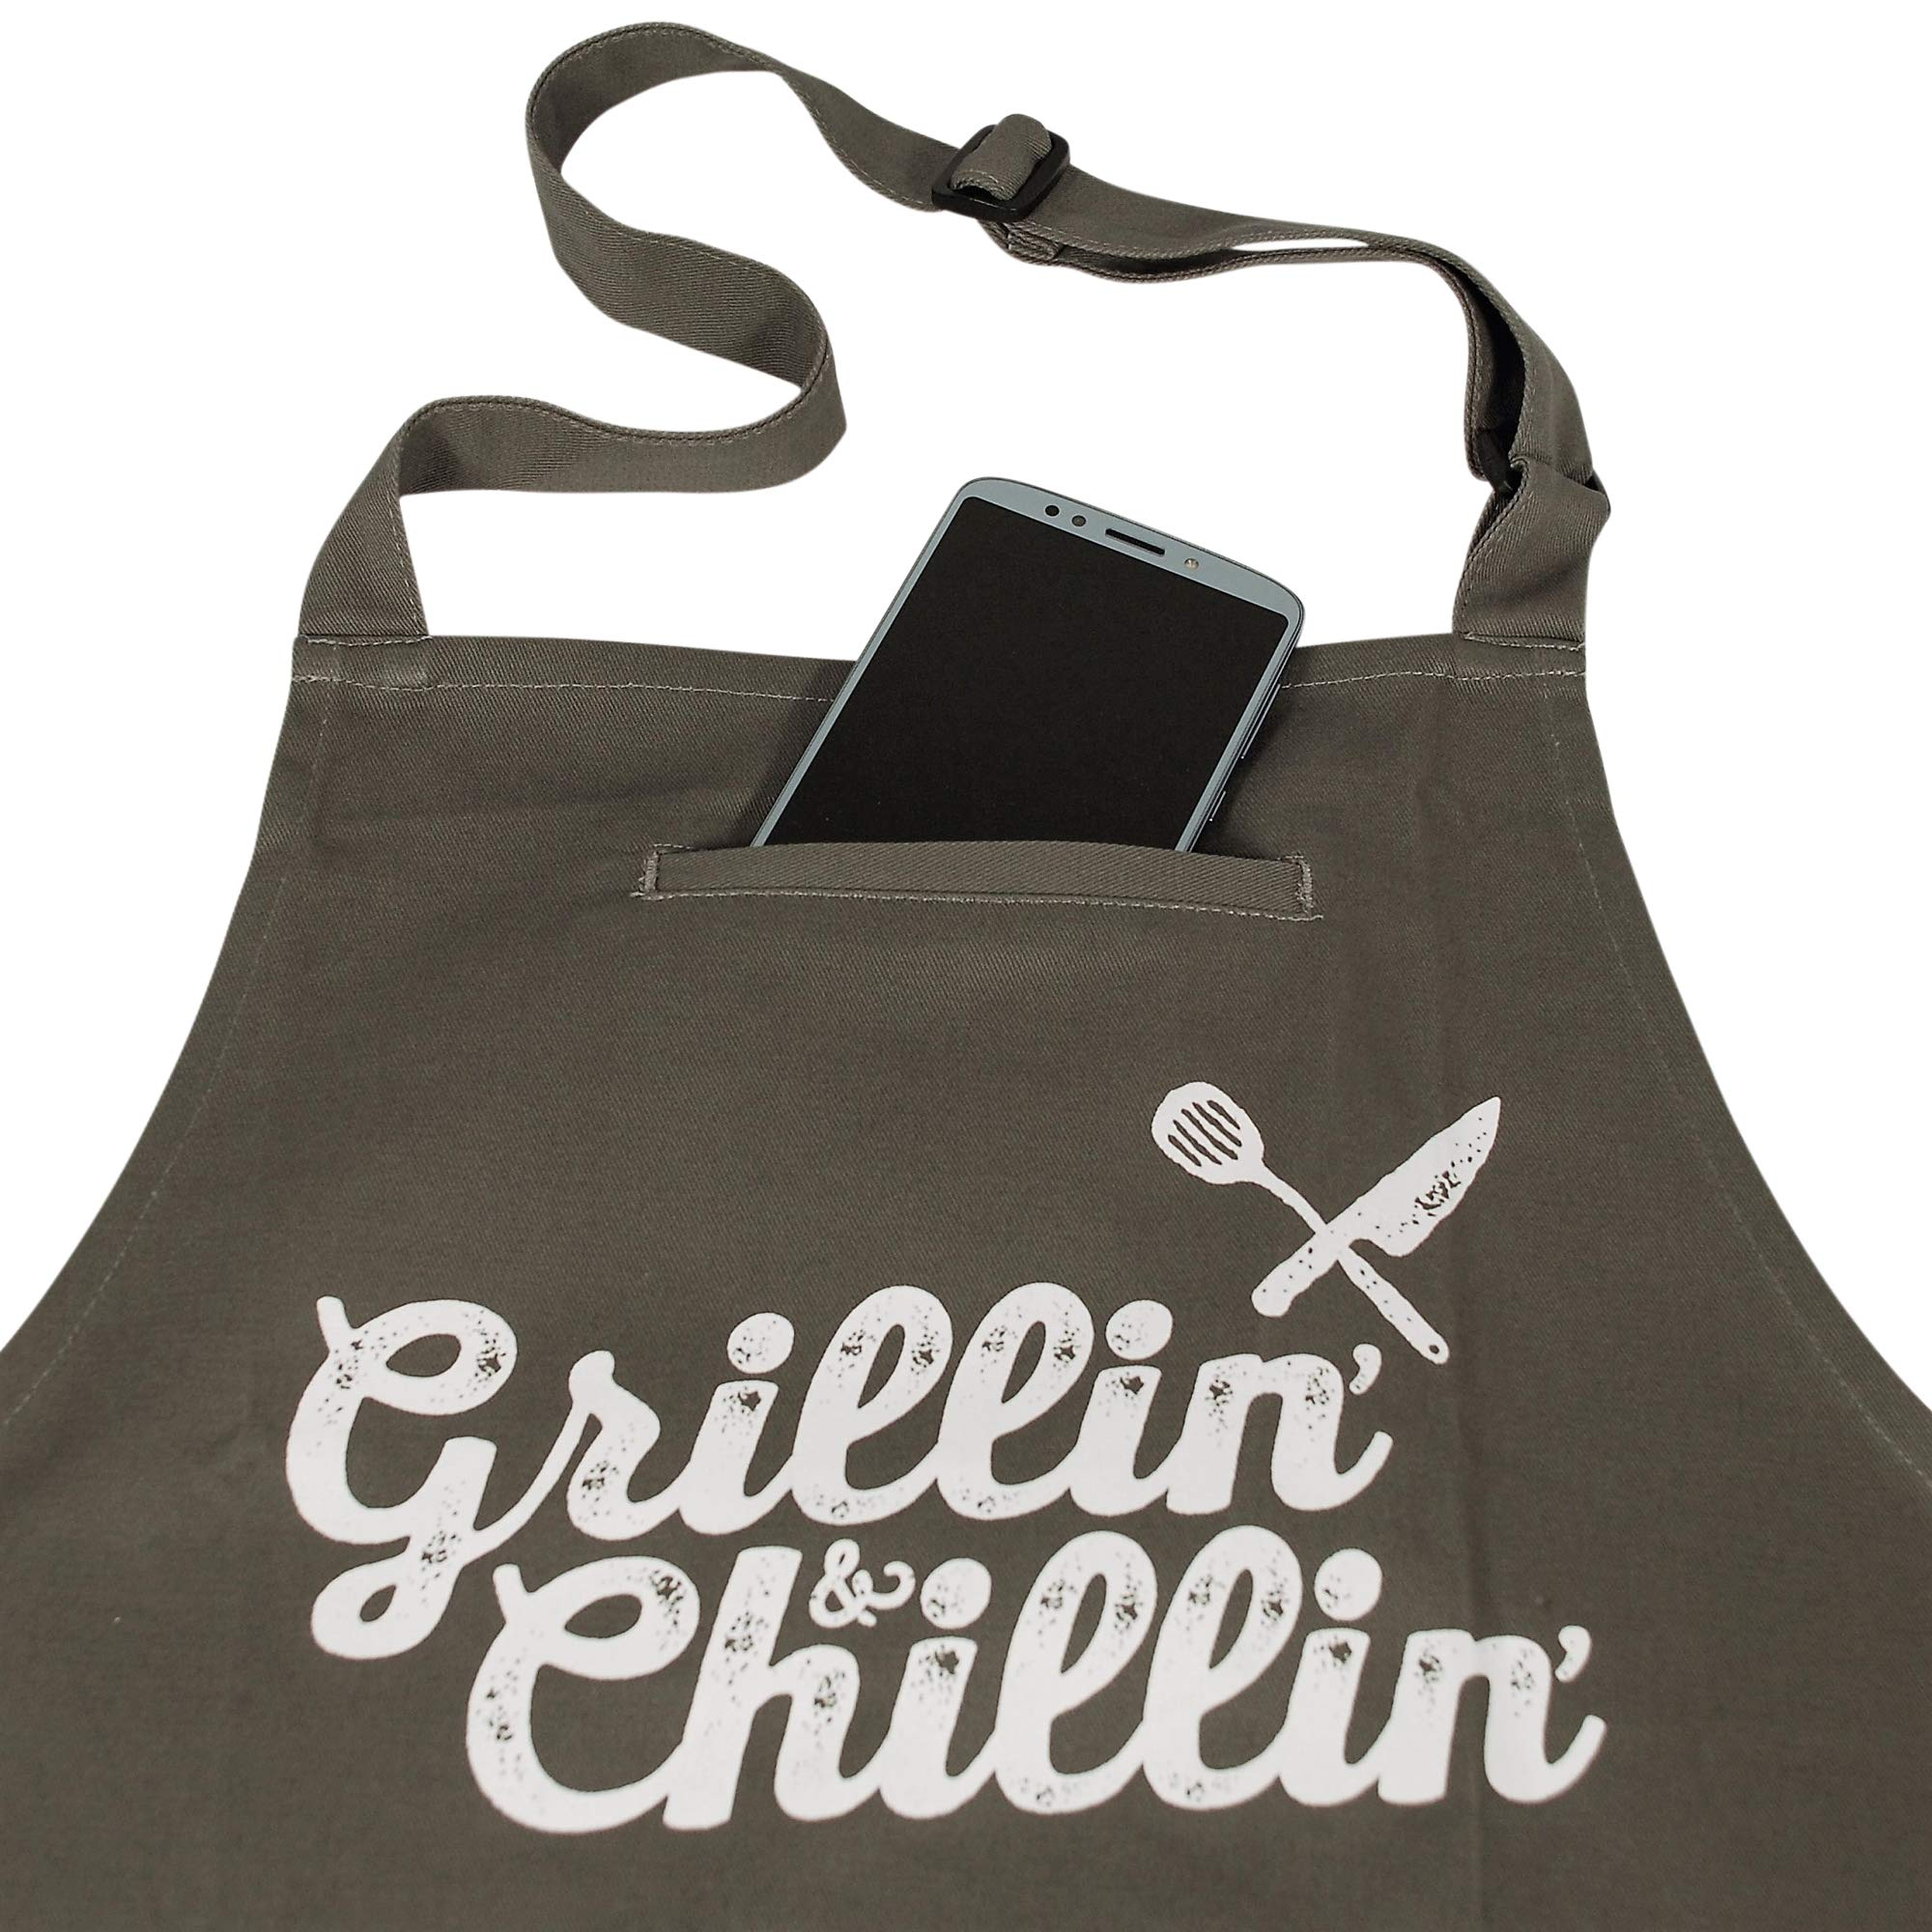 West End Warehouse Chef Apron for Men   Cooking Apron   Funny Apron   BBQ Apron   3 Pockets   Opener, Towel & Gift Box Included   Gray   100% Cotton   Durable Professional Quality by West End Warehouse (Image #5)